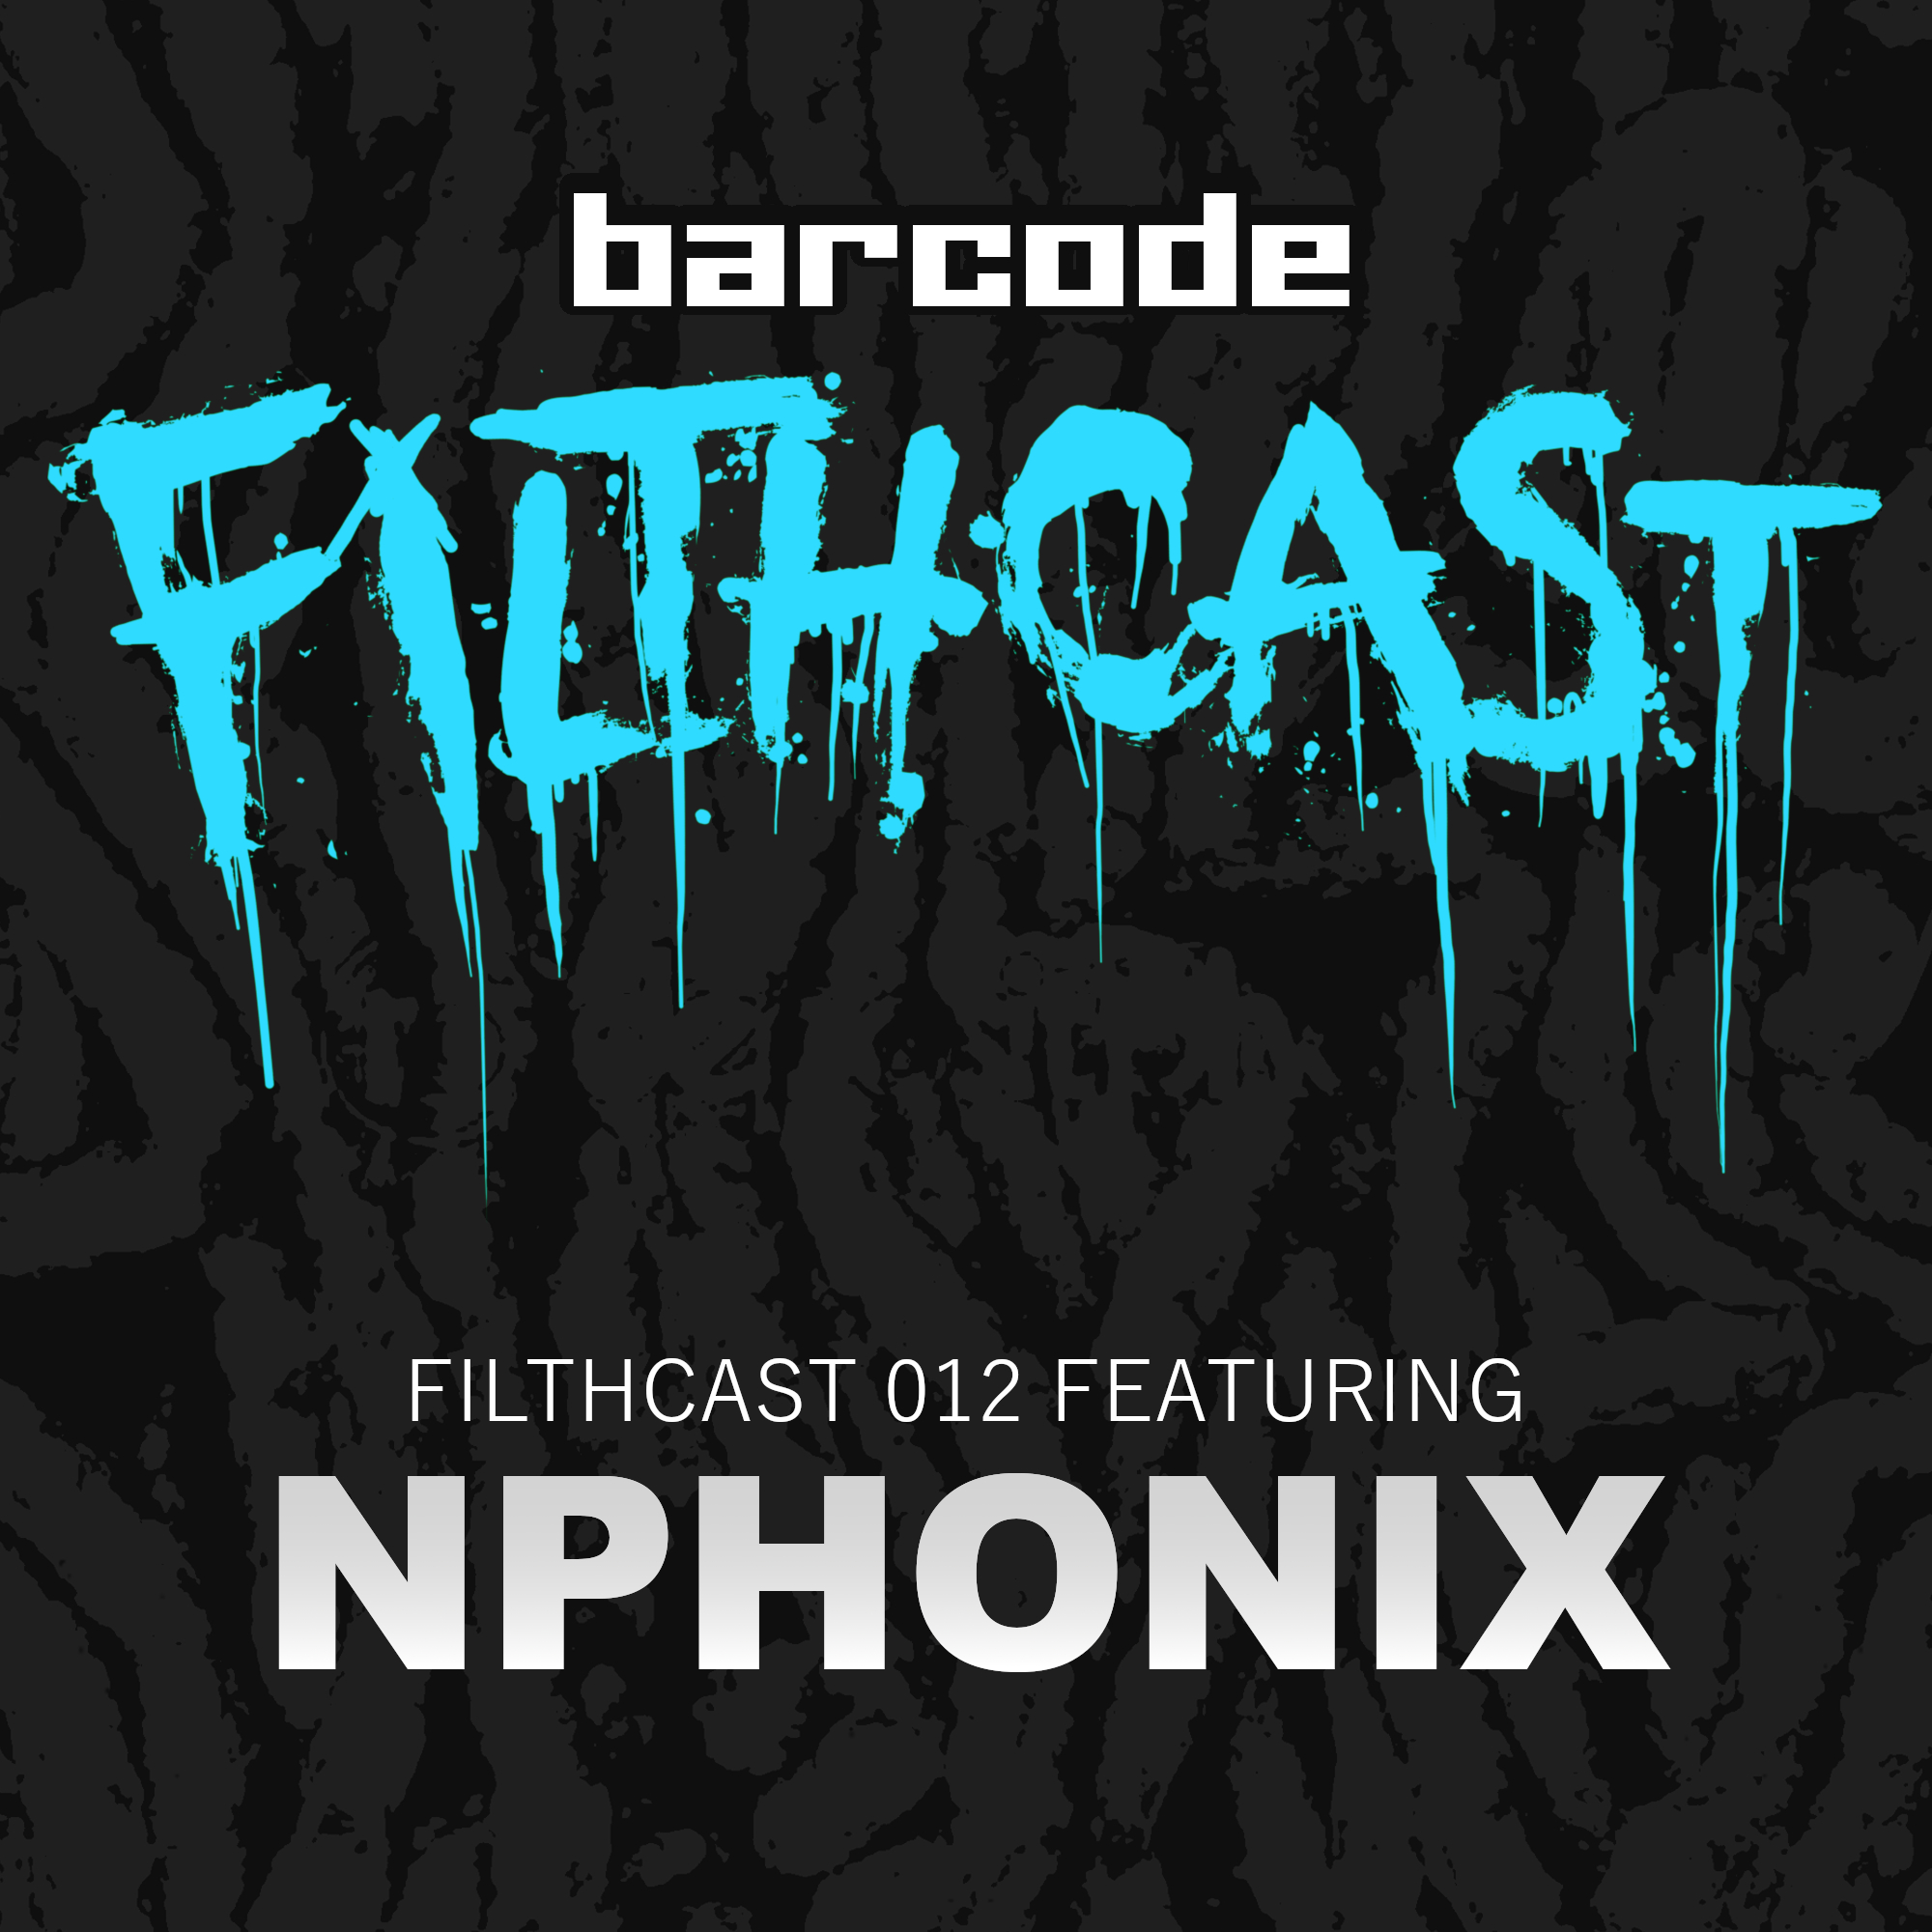 With the Russian drum n bass scene continuing to grow and export new talent, one name stands out in particular. With releases on Subtitles, Algorythm, Habit, and more, Moscow's Nphonix delivers a tight, neuro mix.